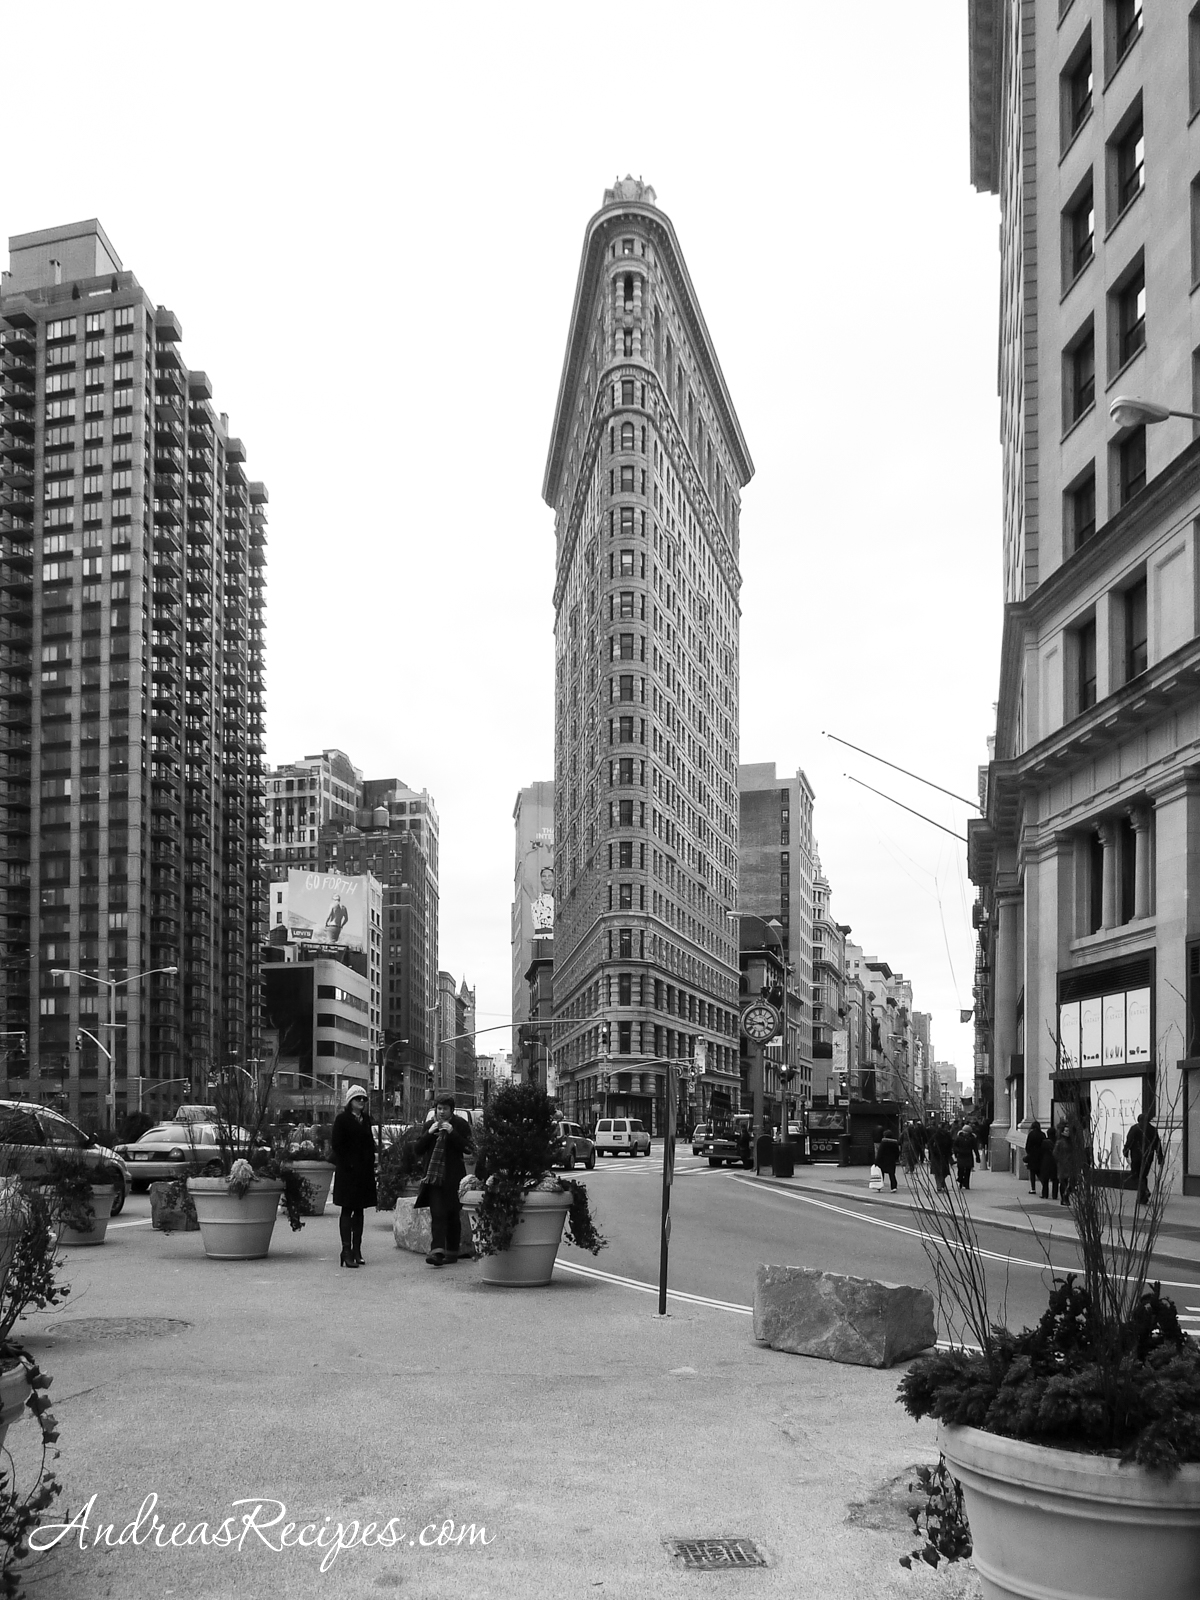 Flatiron Building, New York City - Andrea Meyers